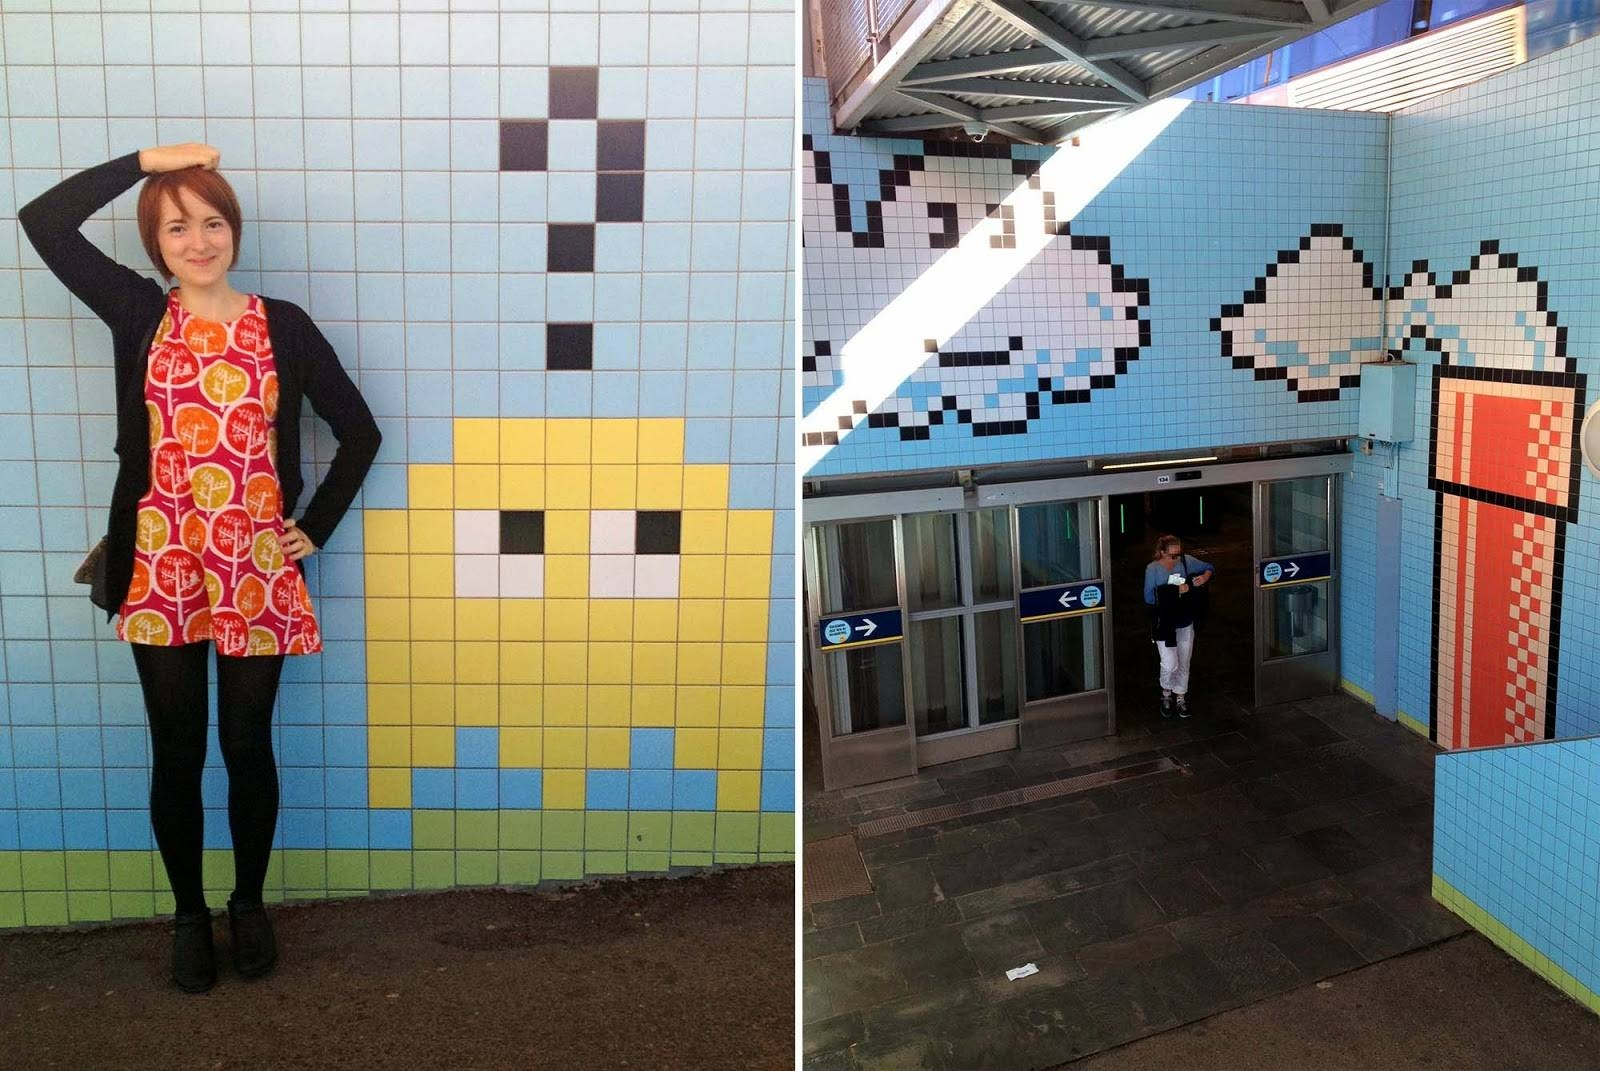 Video Game Mosaic Pixel Art Subway Station In Stockholm | Cute Travels regarding Current Pixel Mosaic Wall Art